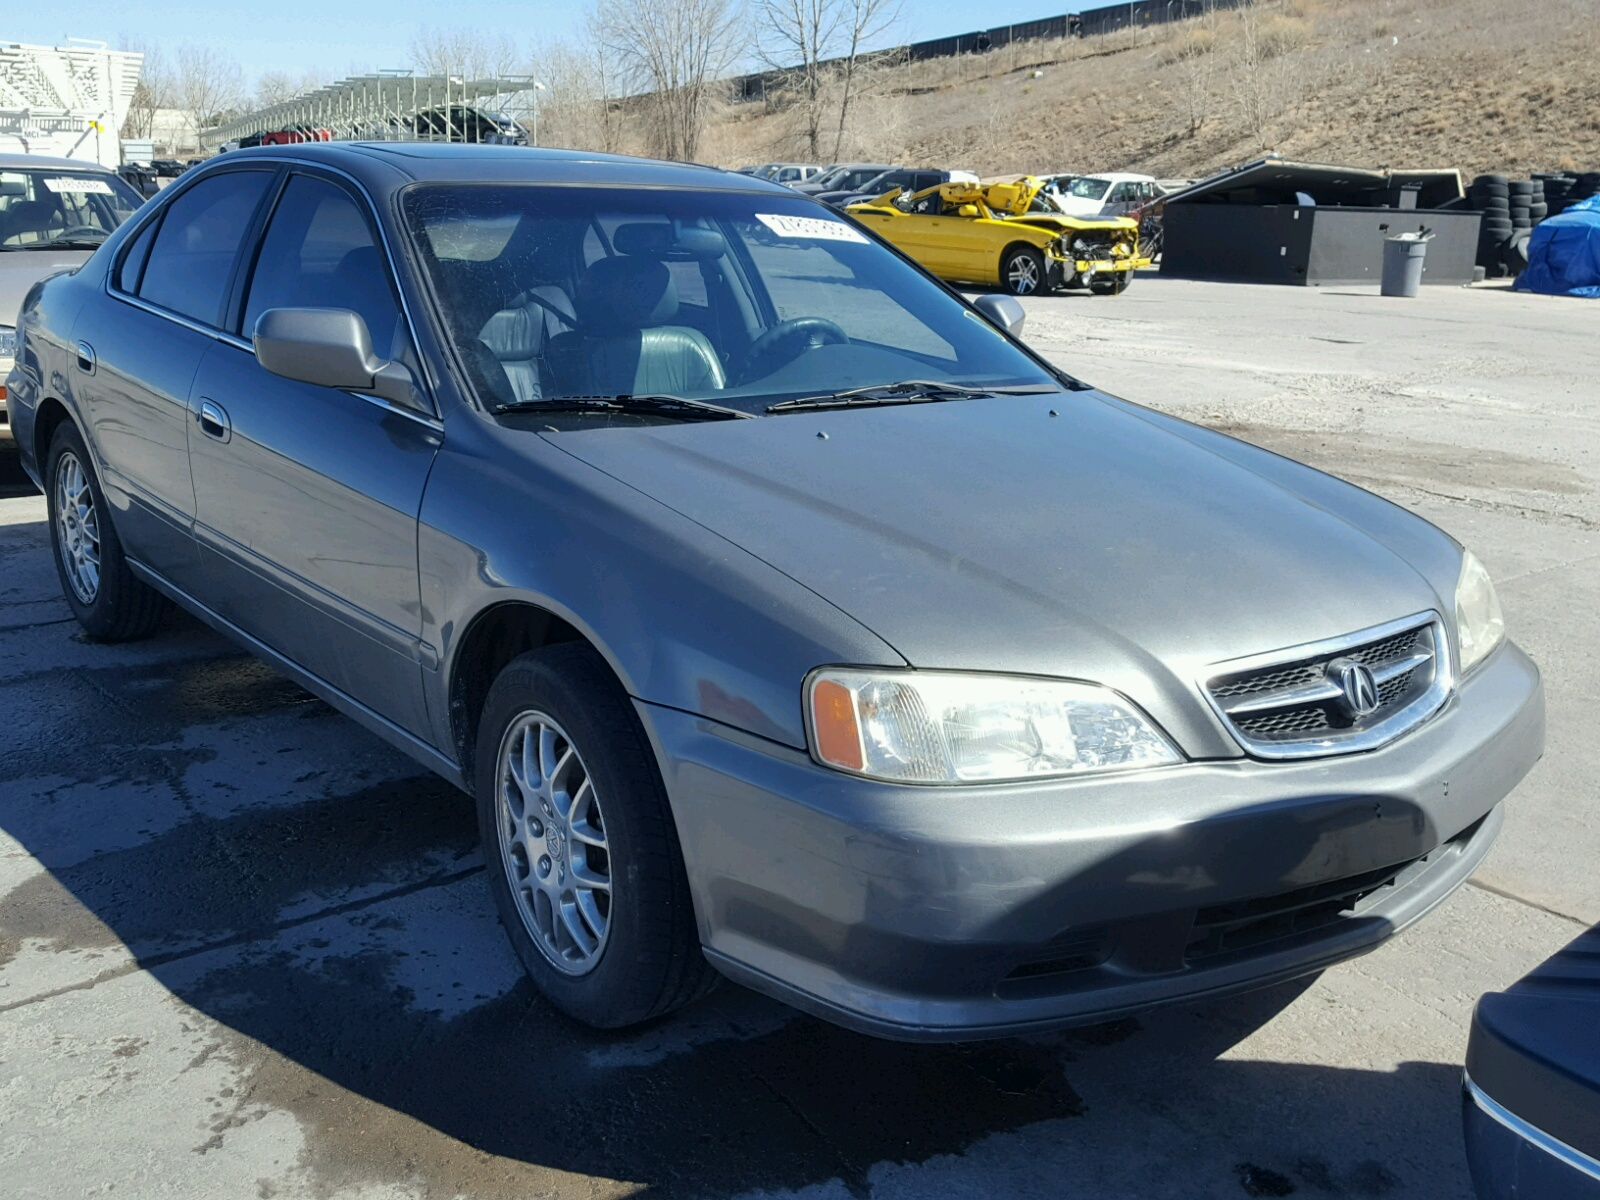 of overview rl light sale eye conversion luxury head cars with jewel for lovely tl acura s erick